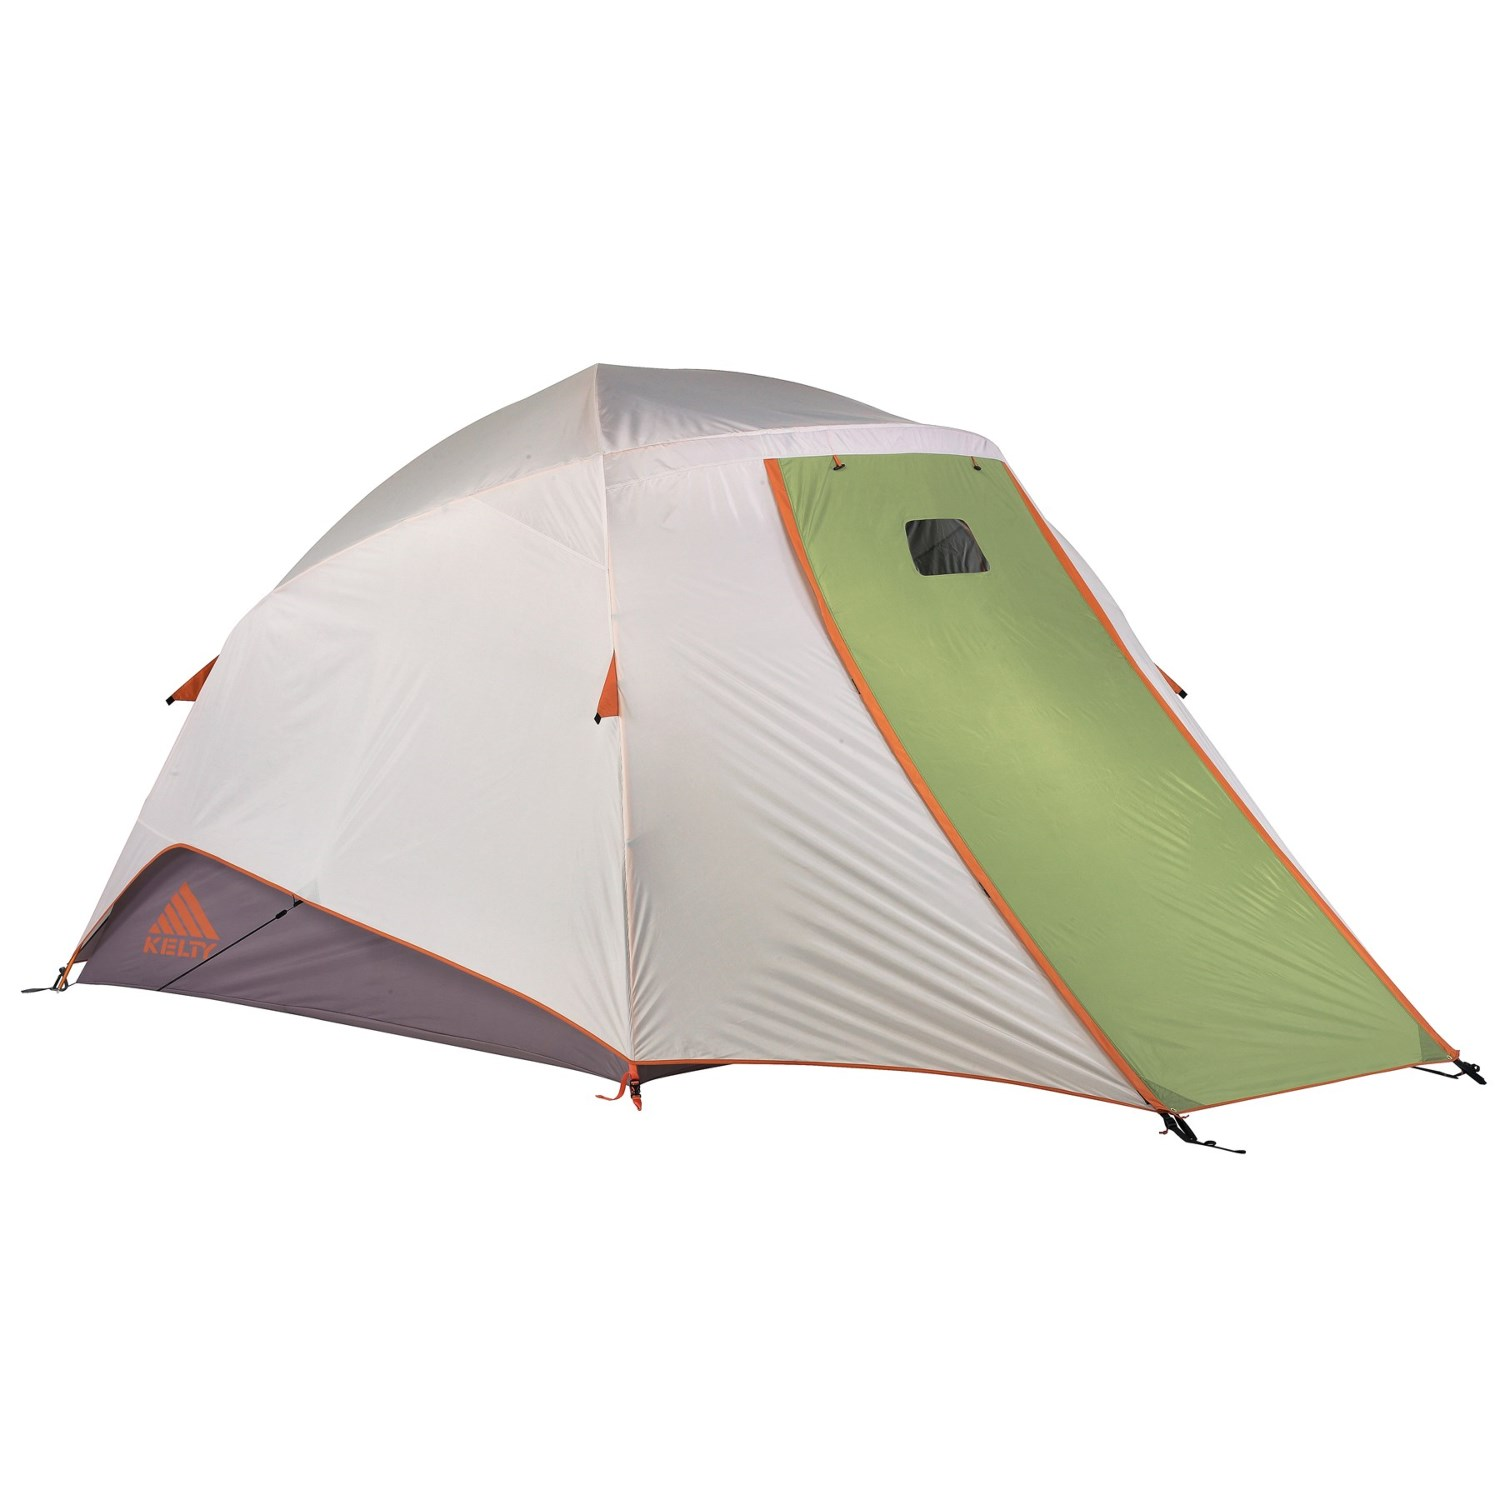 Kelty hula house 6 tent with footprint 6 person 3 for Tent a house